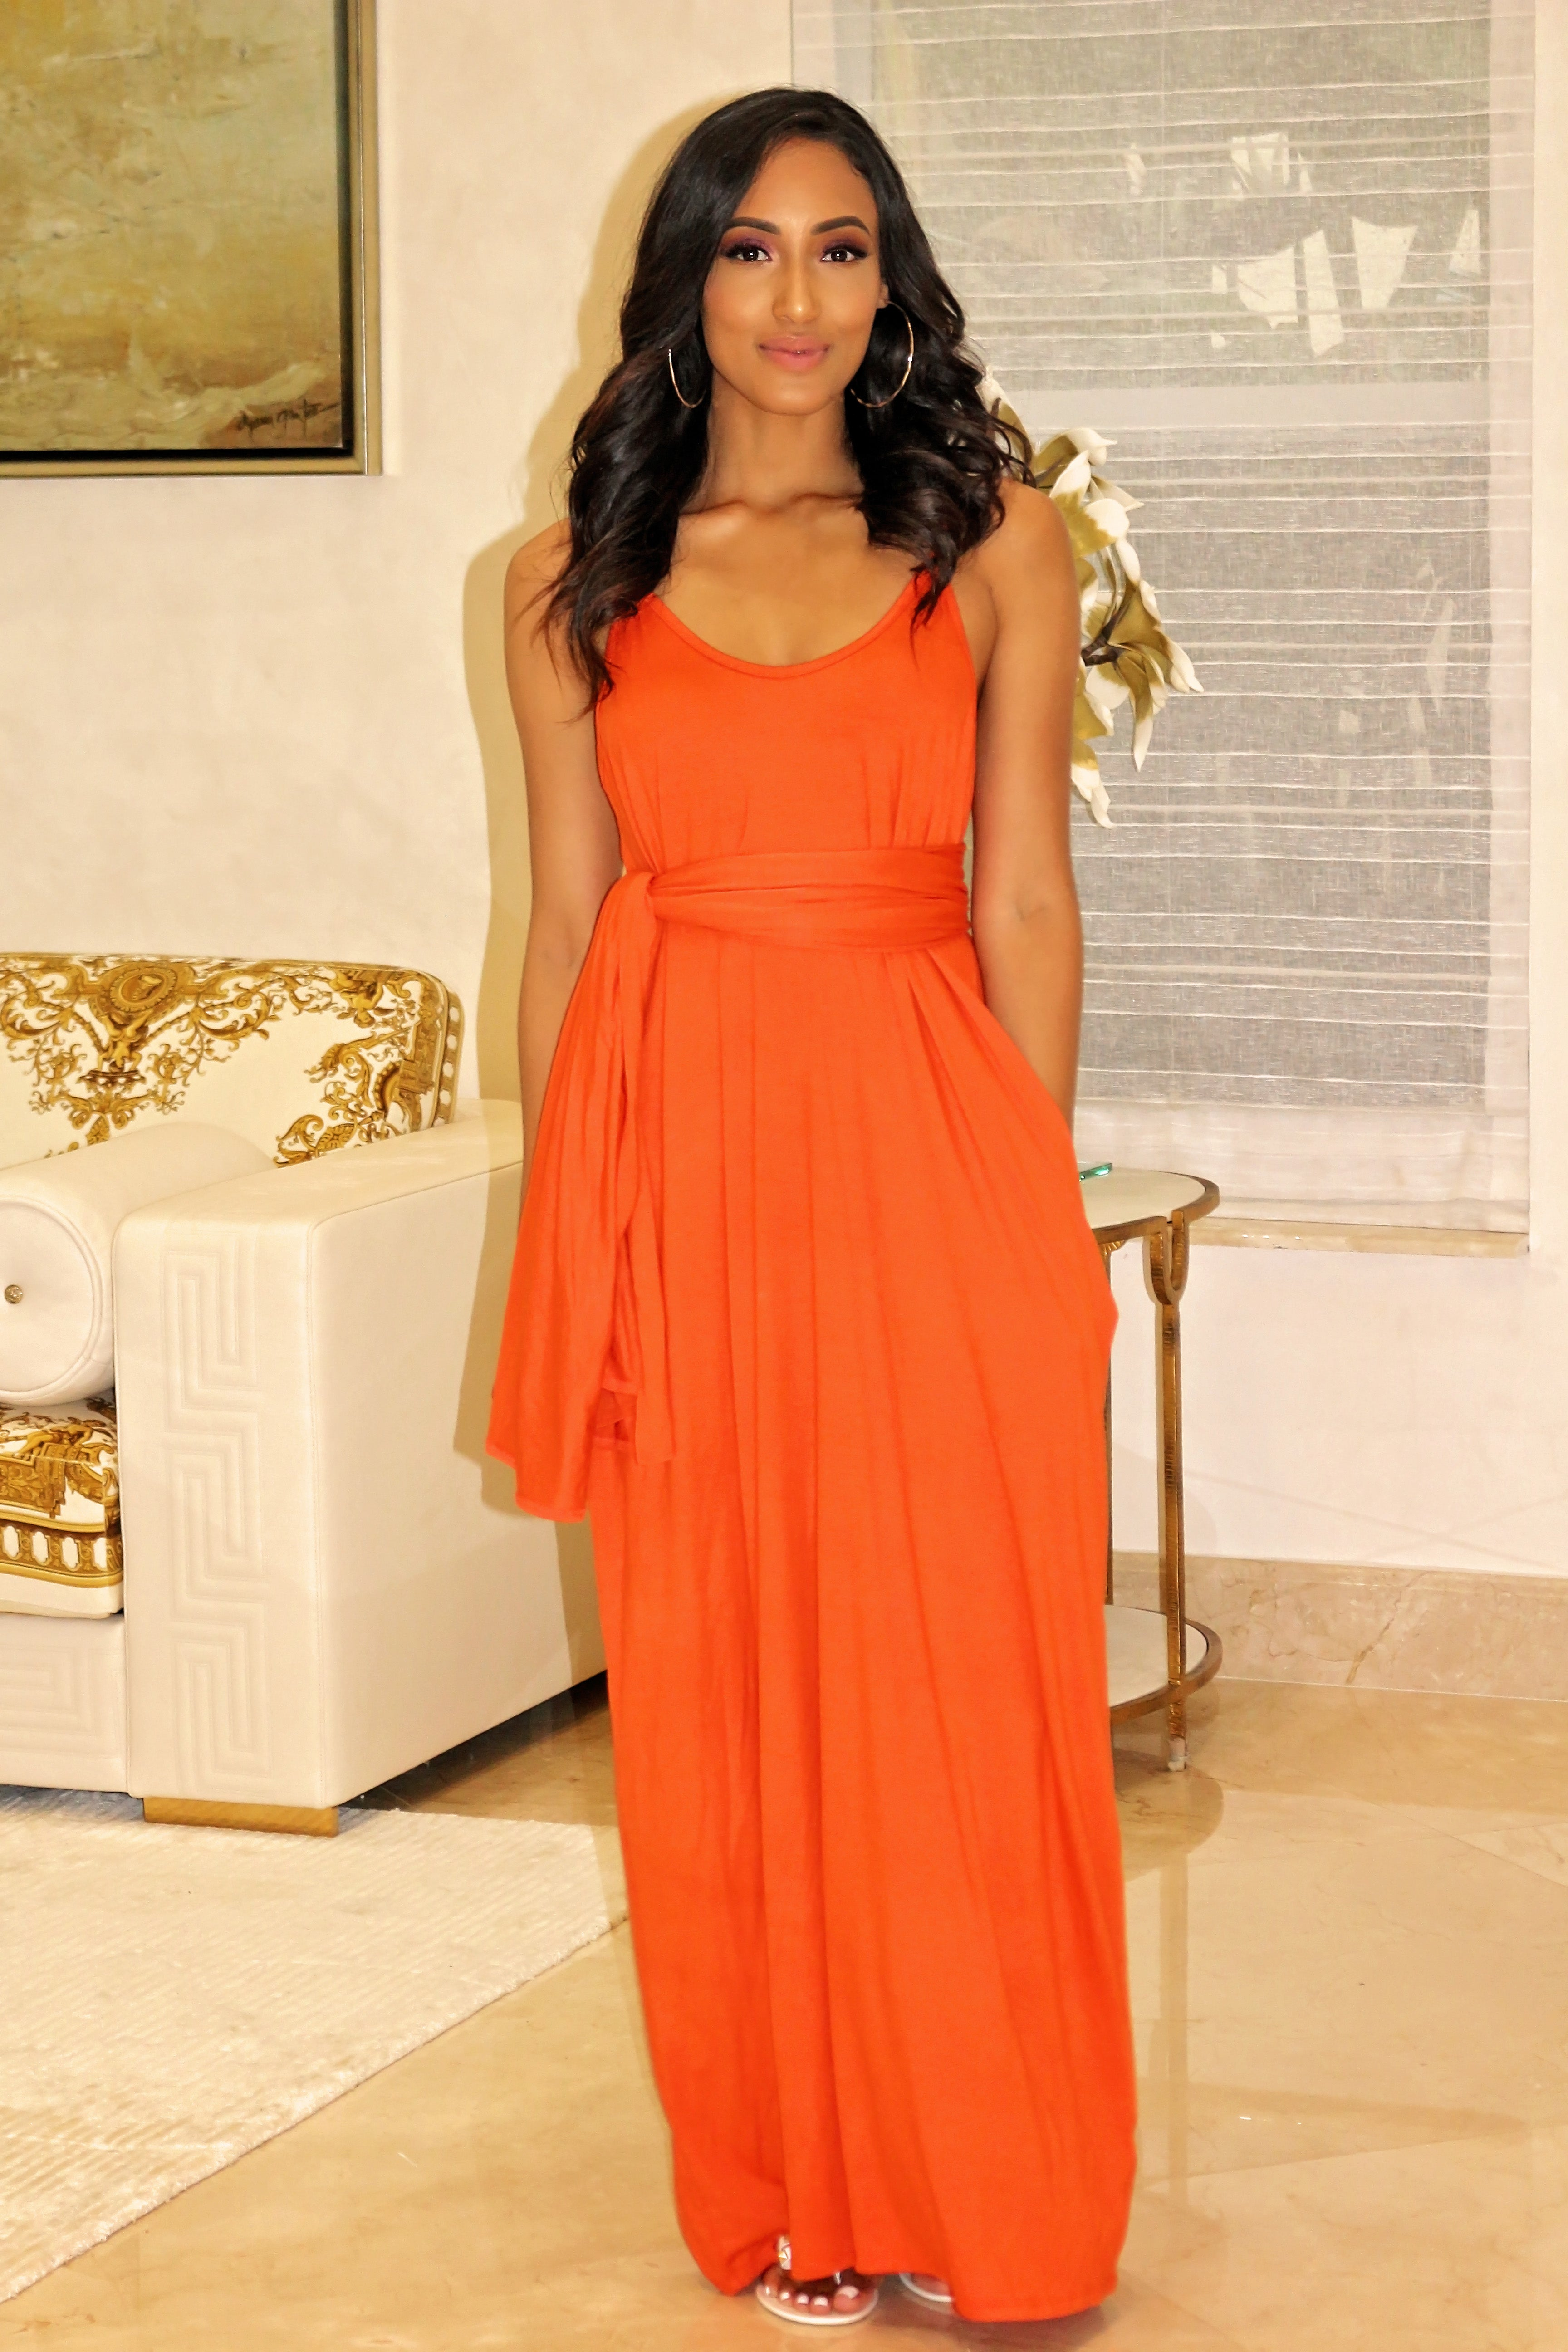 Lounge Max Dress Orange - Semai House Of fashion